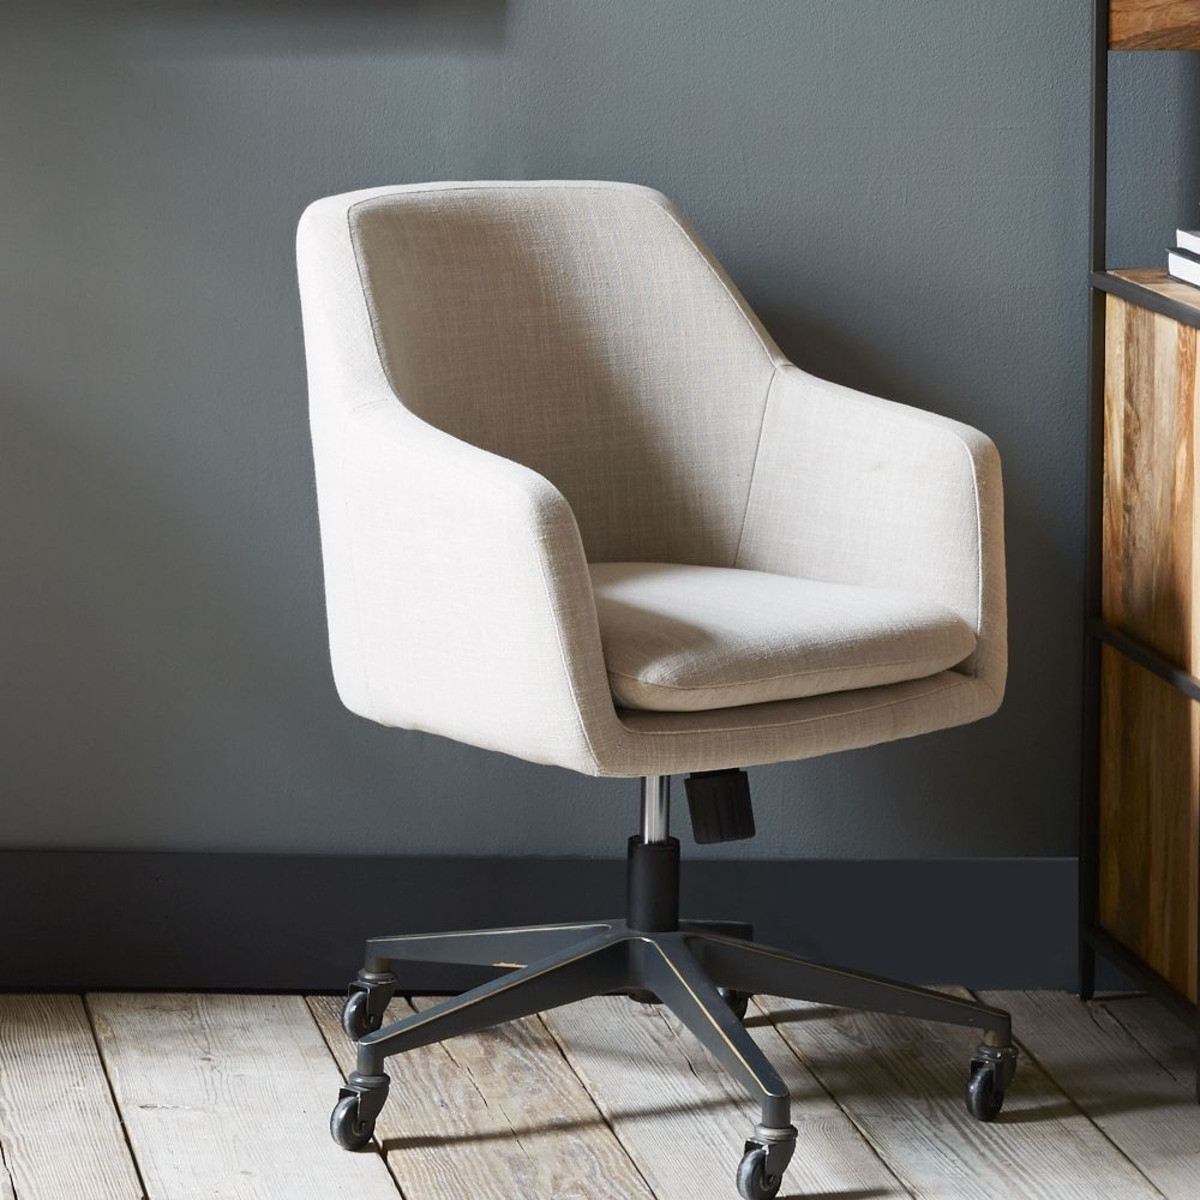 Current Upholstered Executive Office Chairs With Upholstered Office Chairs For Desk Chair On Wheel Varied And (View 2 of 20)